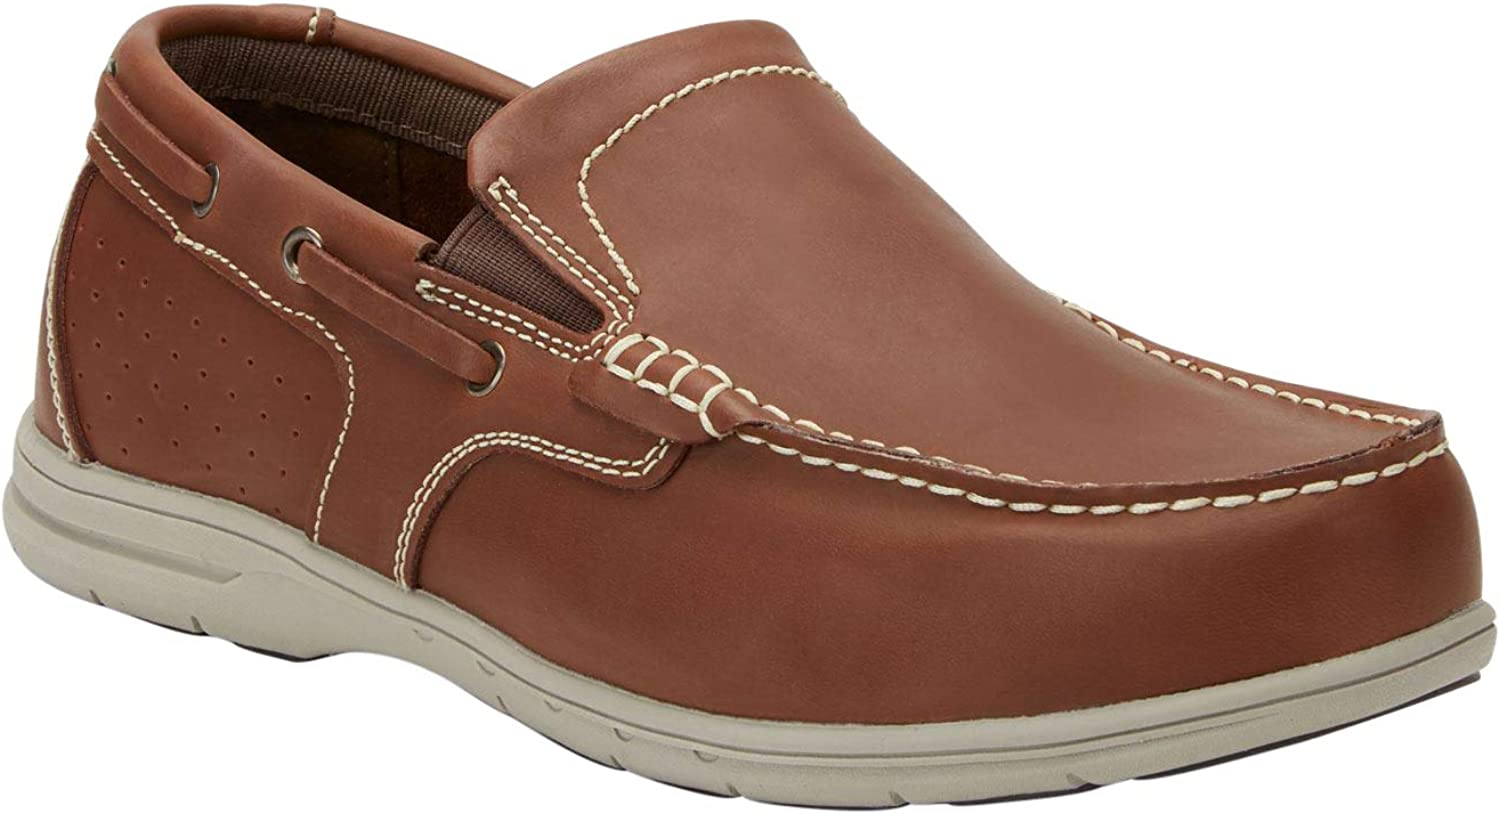 KingSize Men's Big & Tall Slip-On Boat shoes